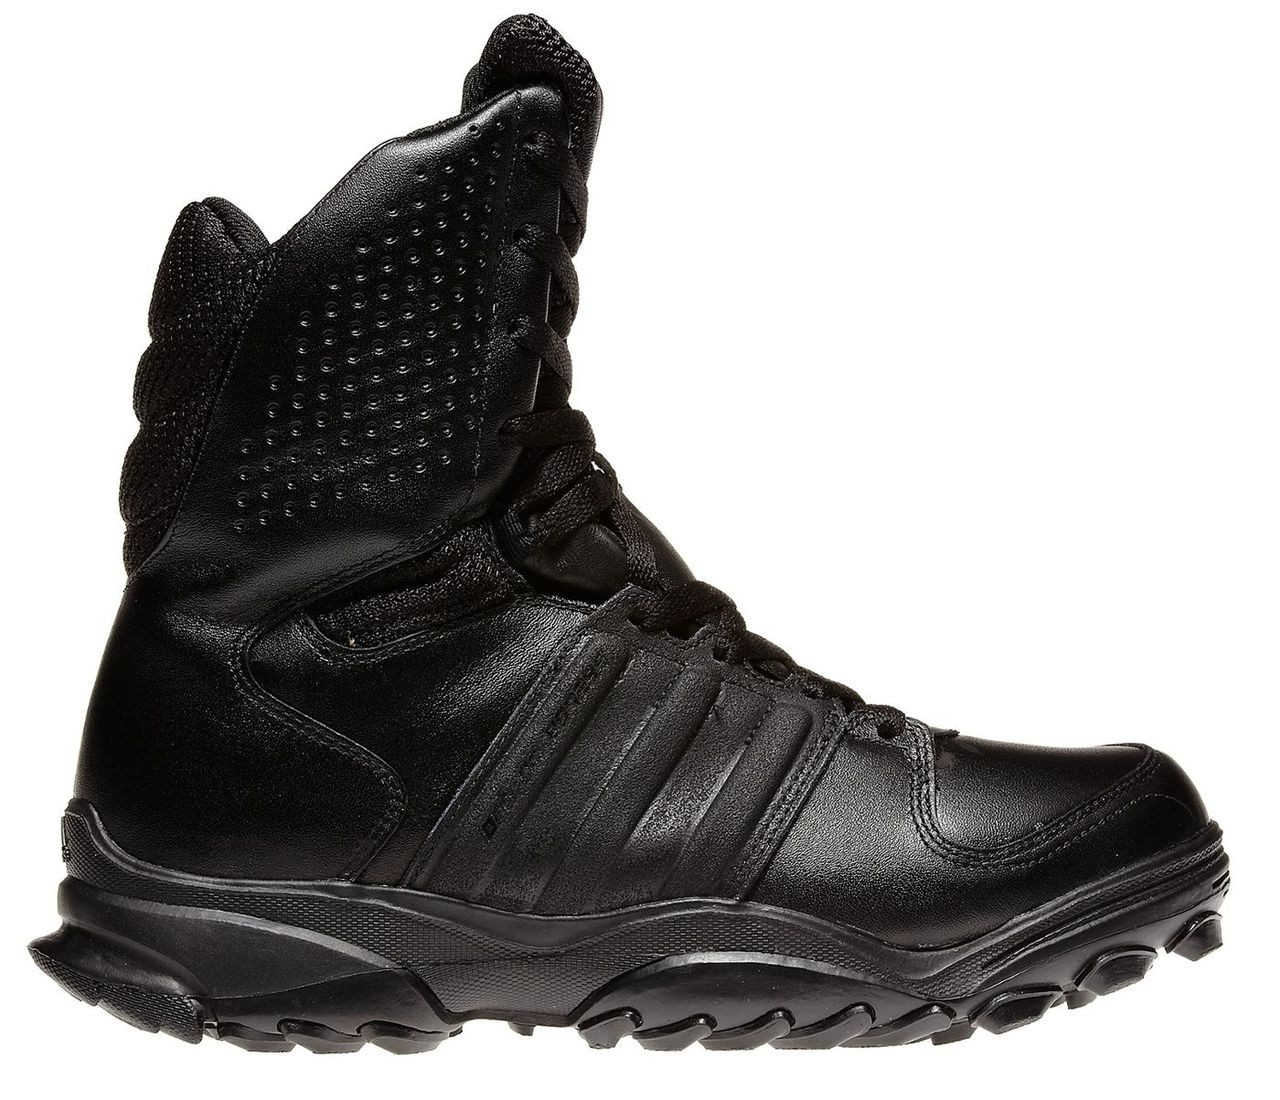 a9a9fab12fd0 Adidas GSG-9.2 Boots, FREE Shipping   NO Sales Tax